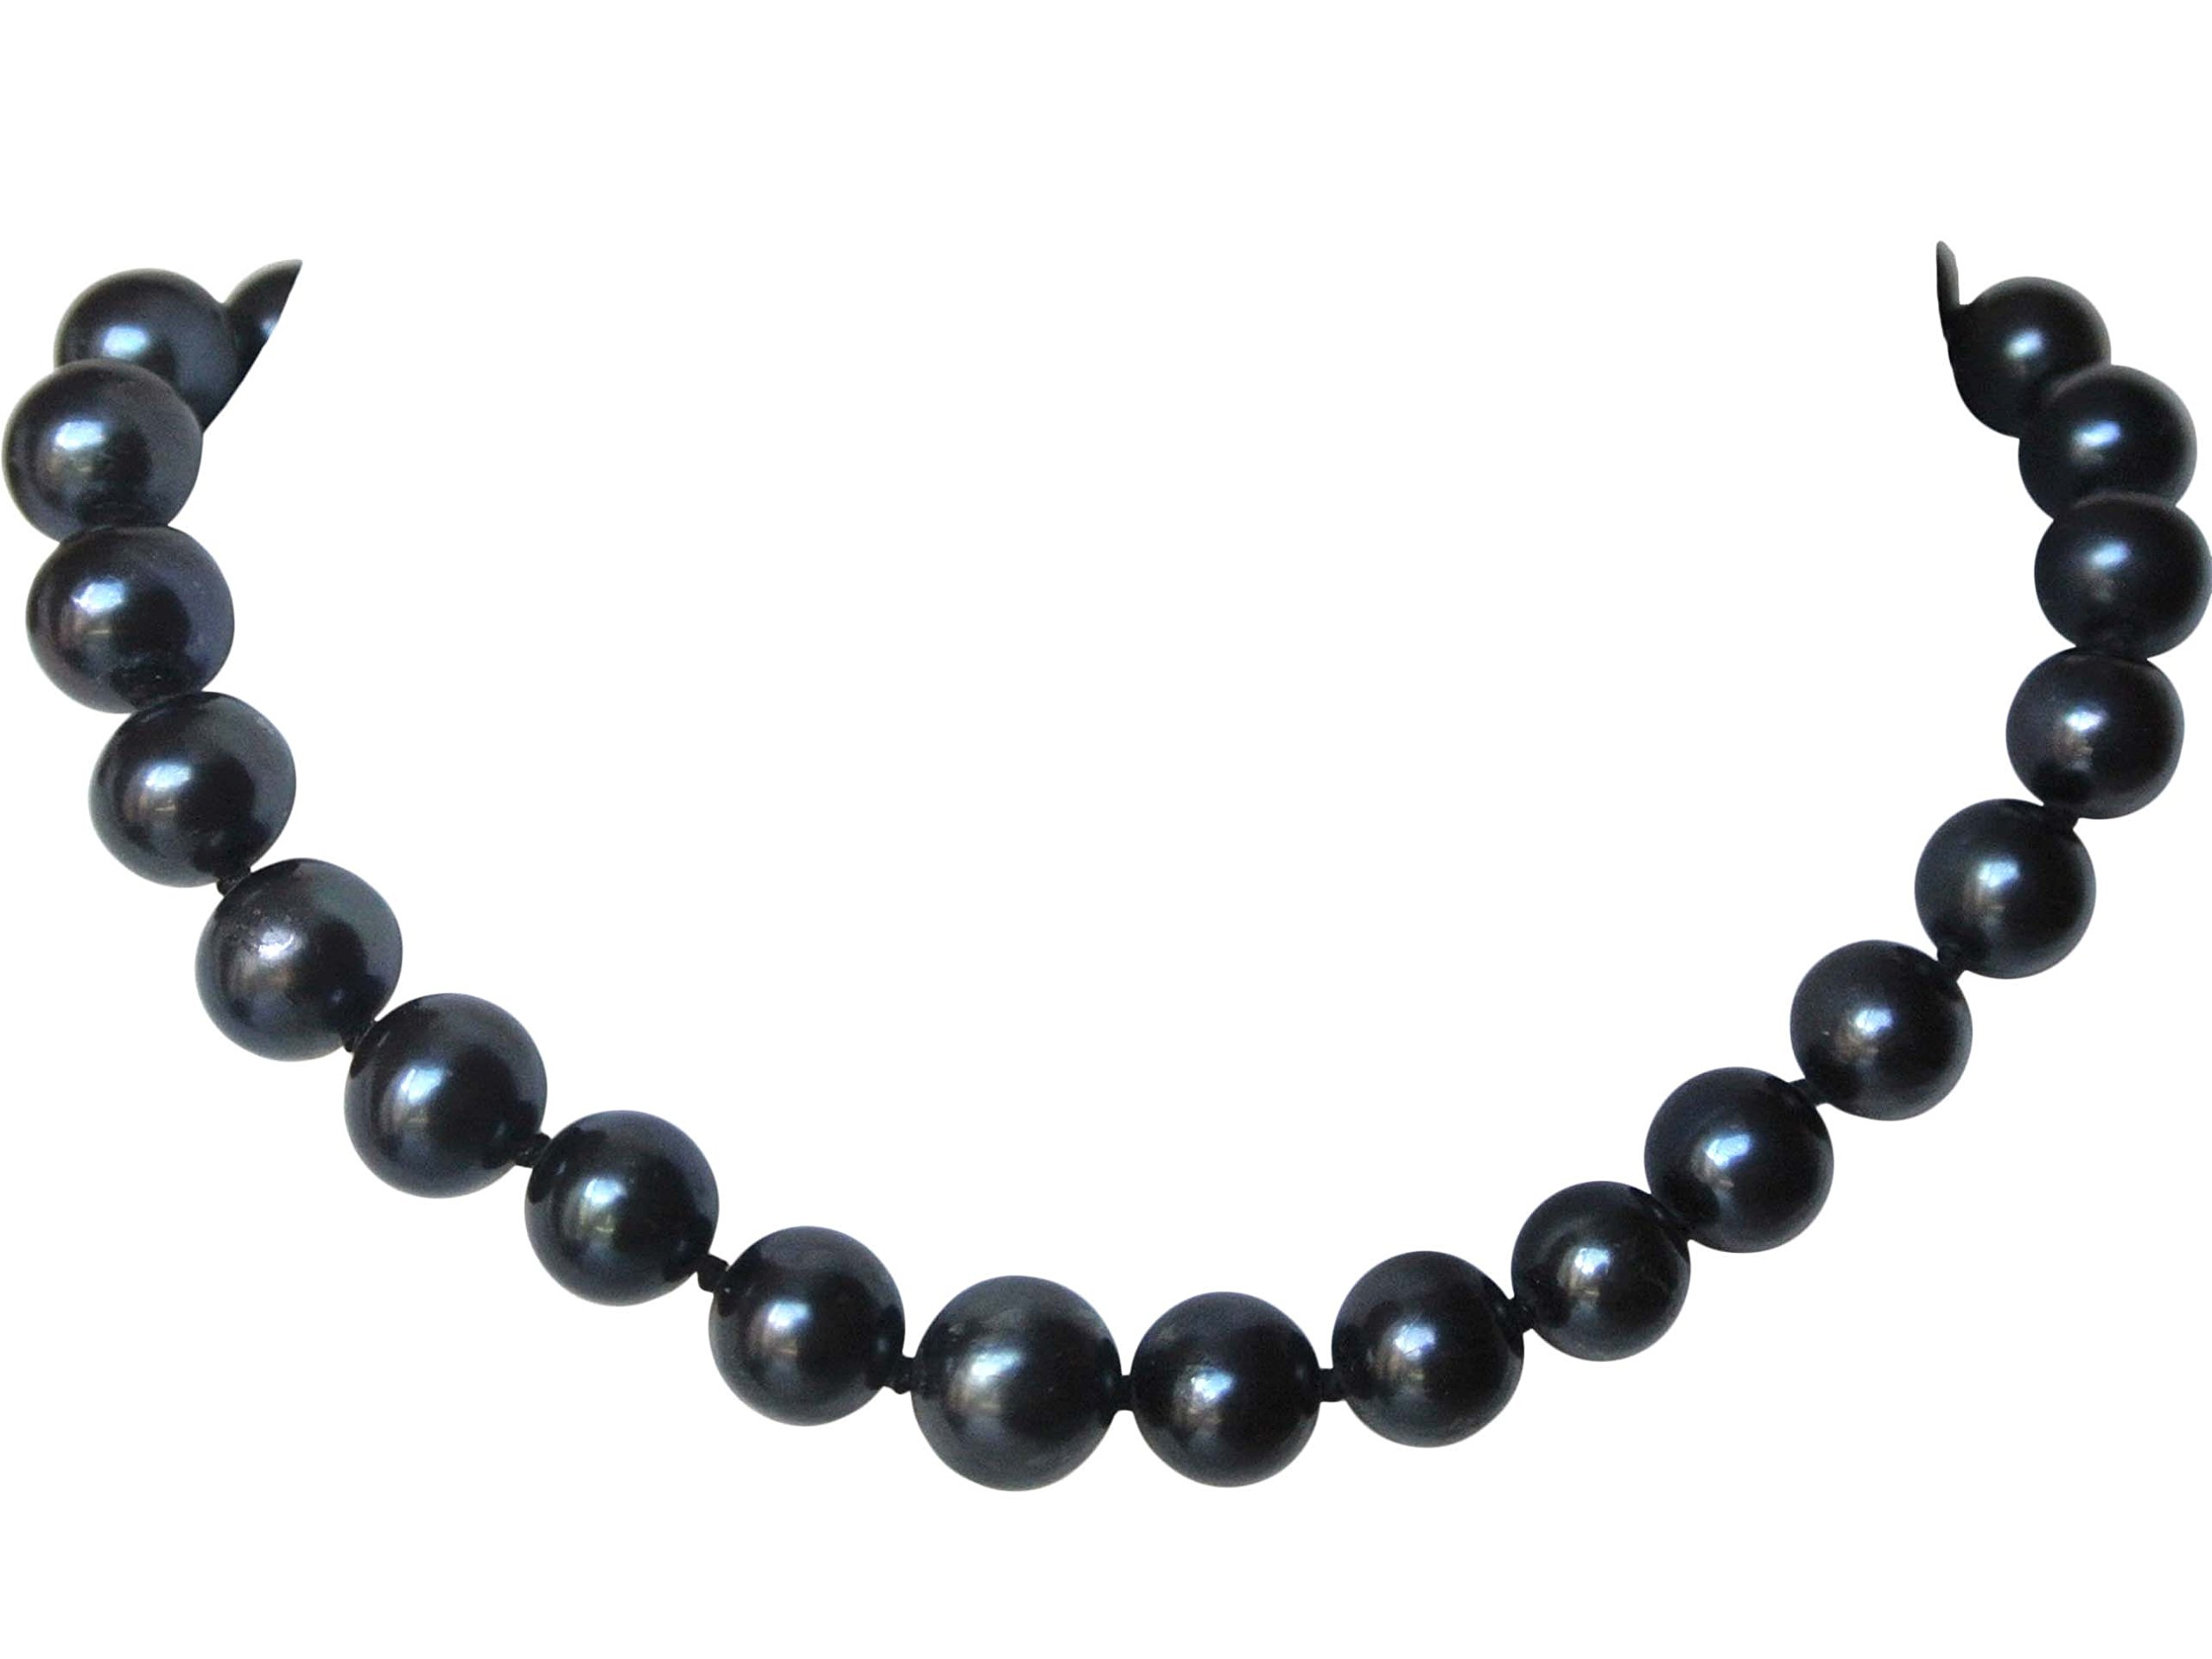 16'' 7'' inch 3pc Set AAA Choker Genuine 7mm 8mm 9mm 10mm ROUND Black Strand Pearl Necklace Bracelet Stud Earrings Cultured Freshwater (9.0-9.5mm)